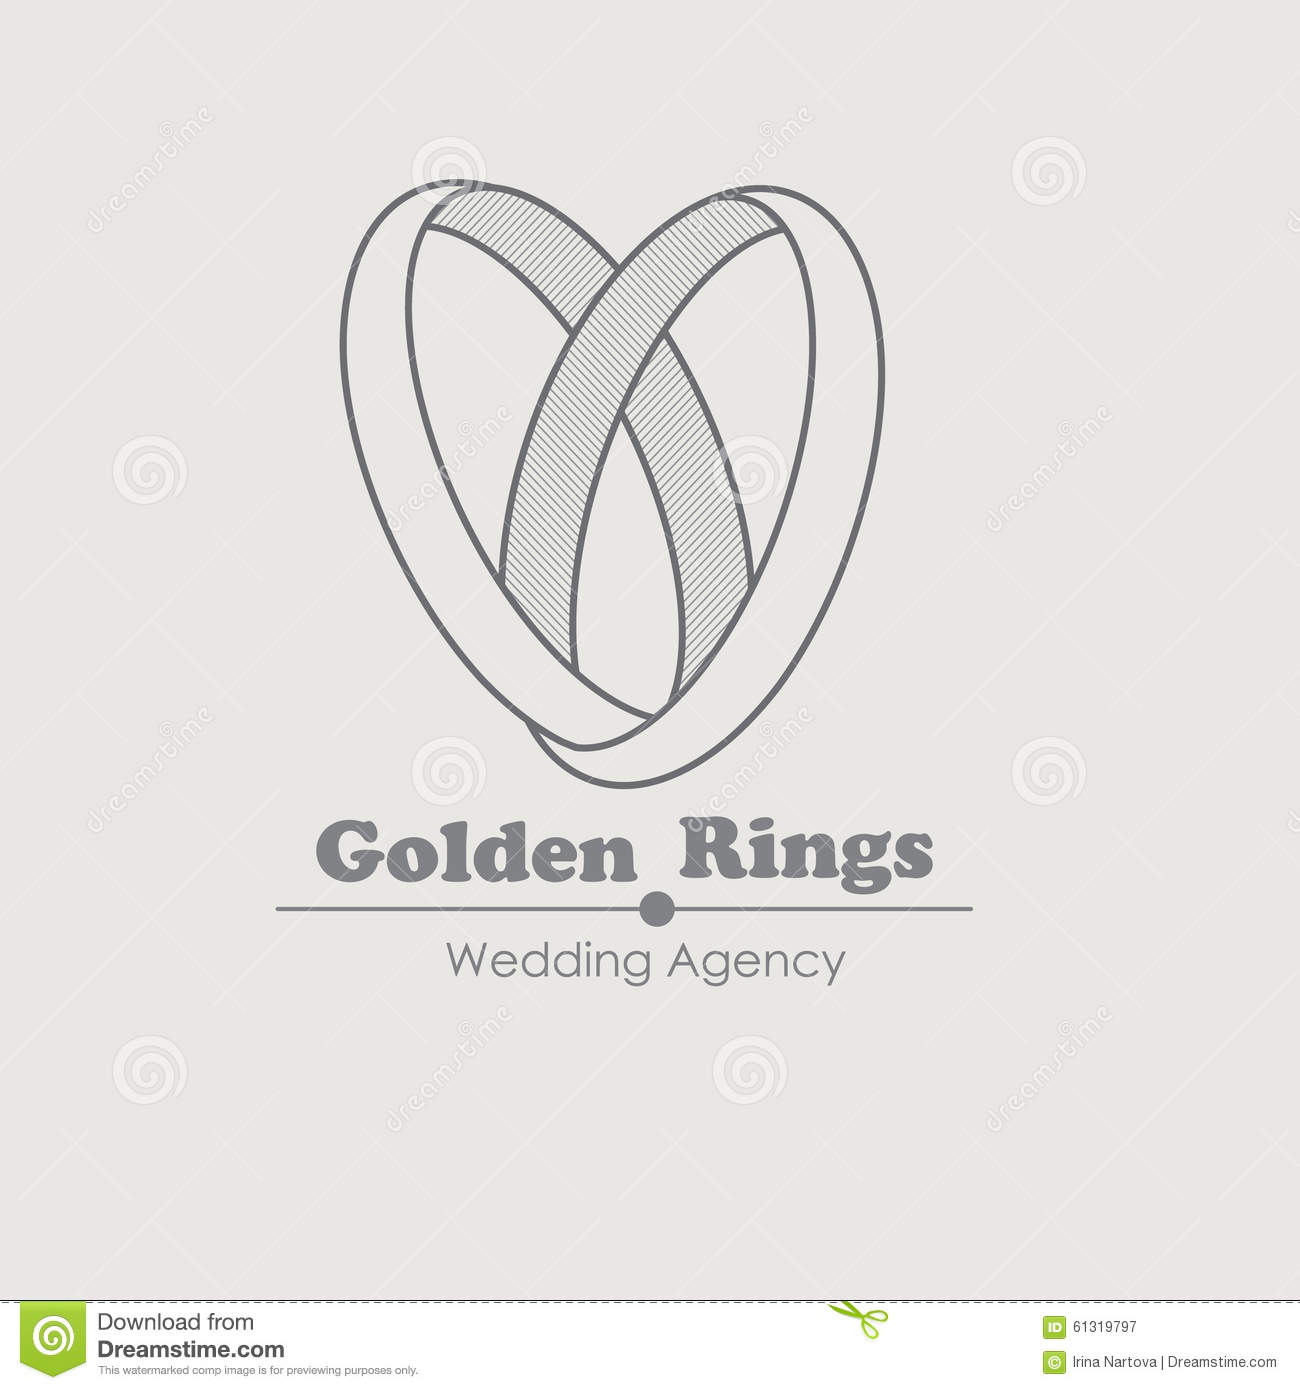 the logo logos lord rings download of